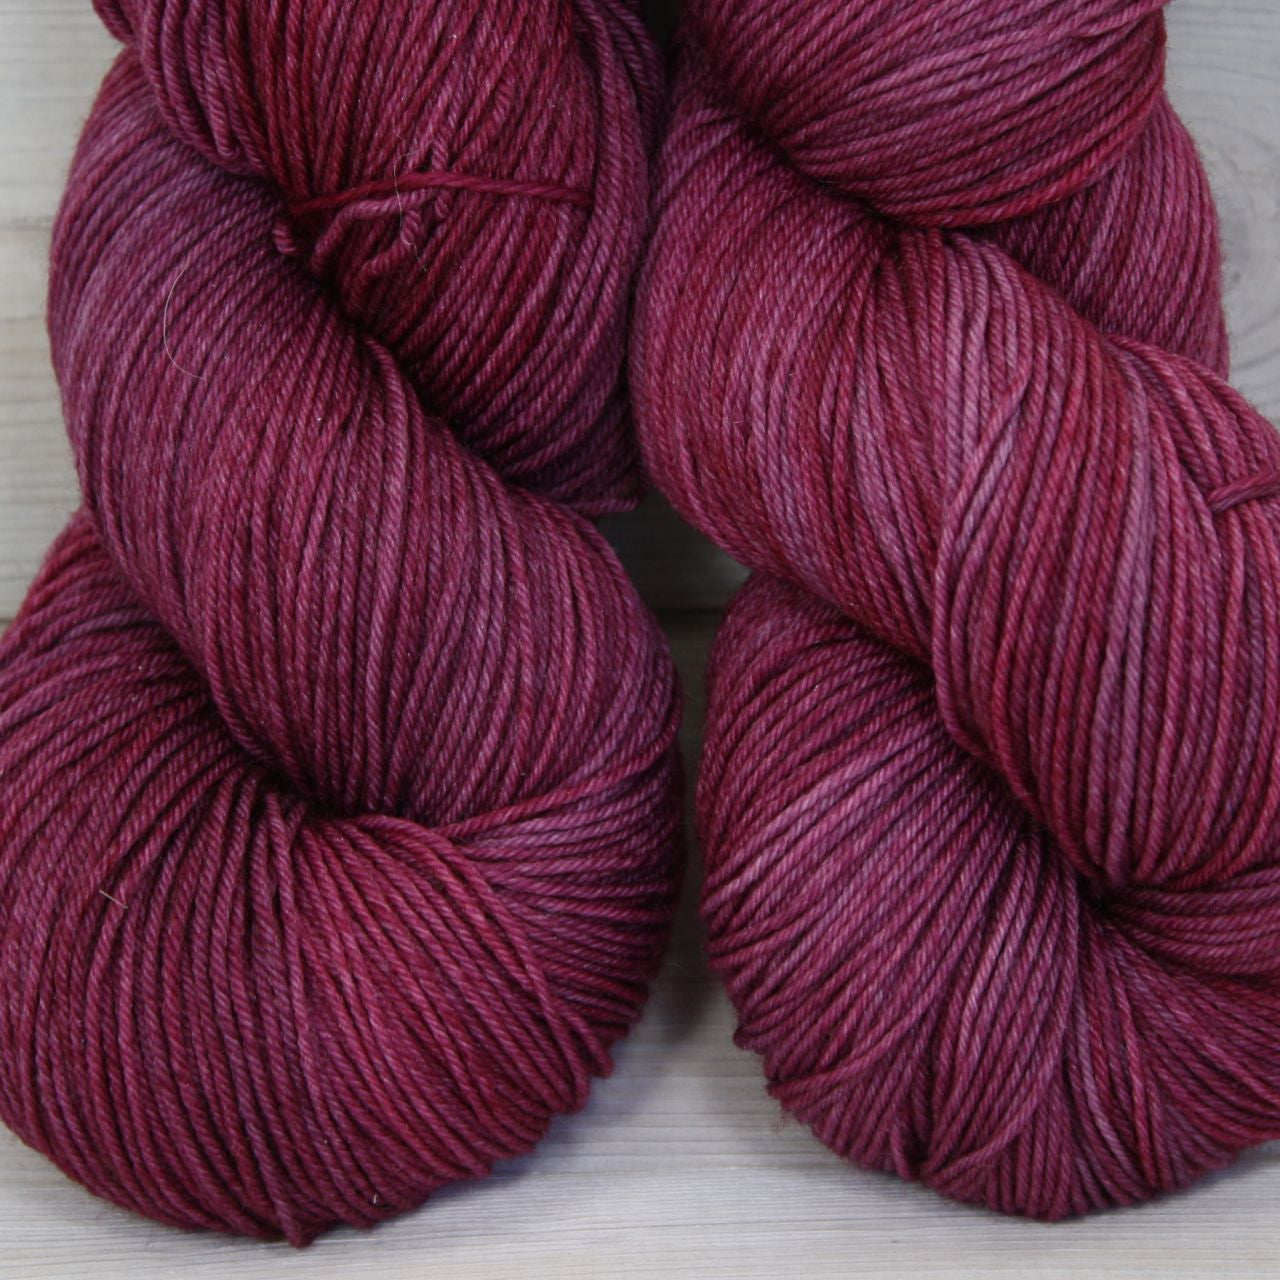 Altair Yarn | Colorway: Sugar Plum